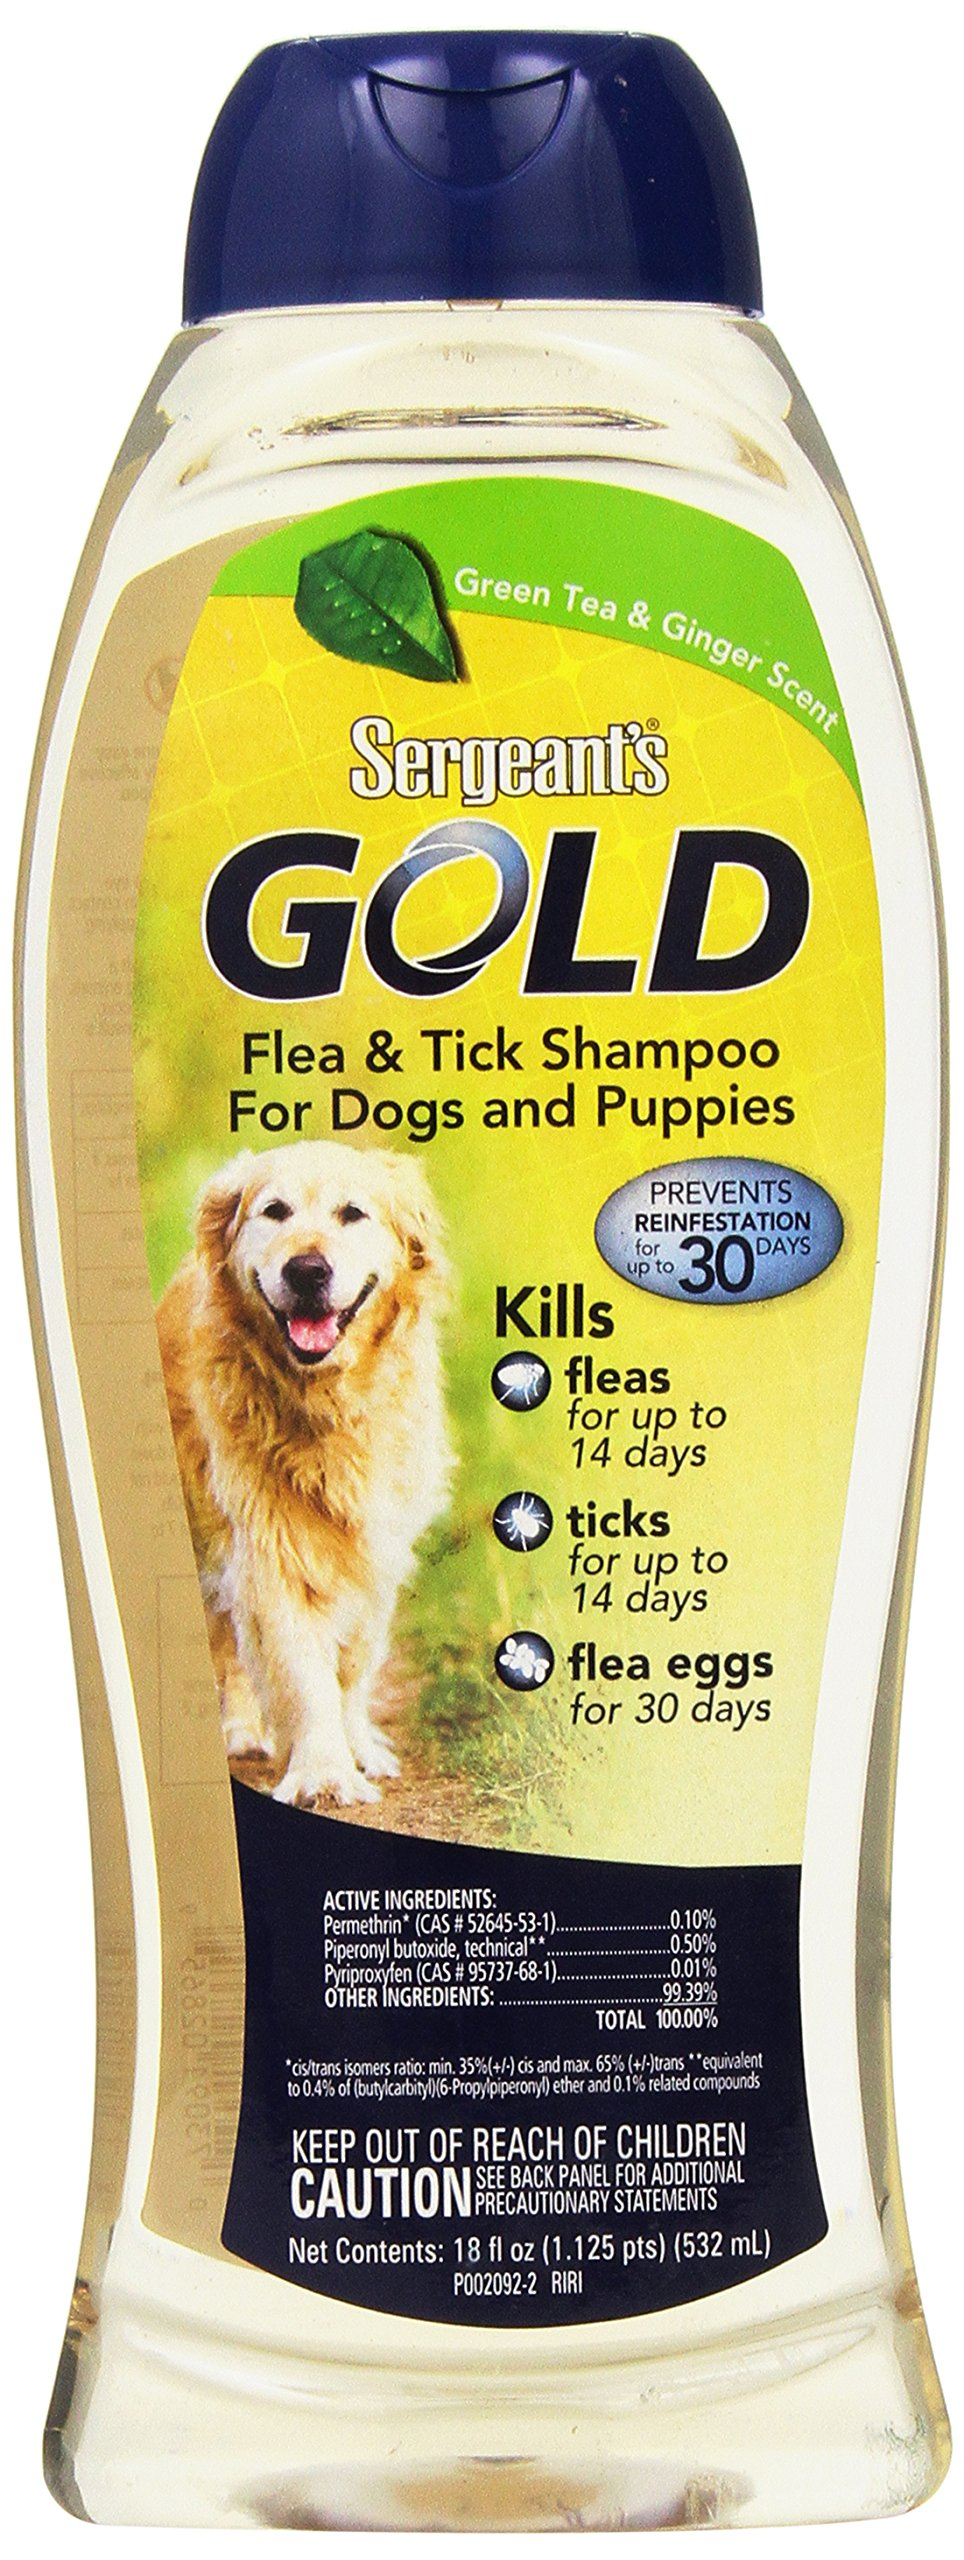 Sergeant's Gold Flea and Tick Shampoo for Dogs, 18 oz